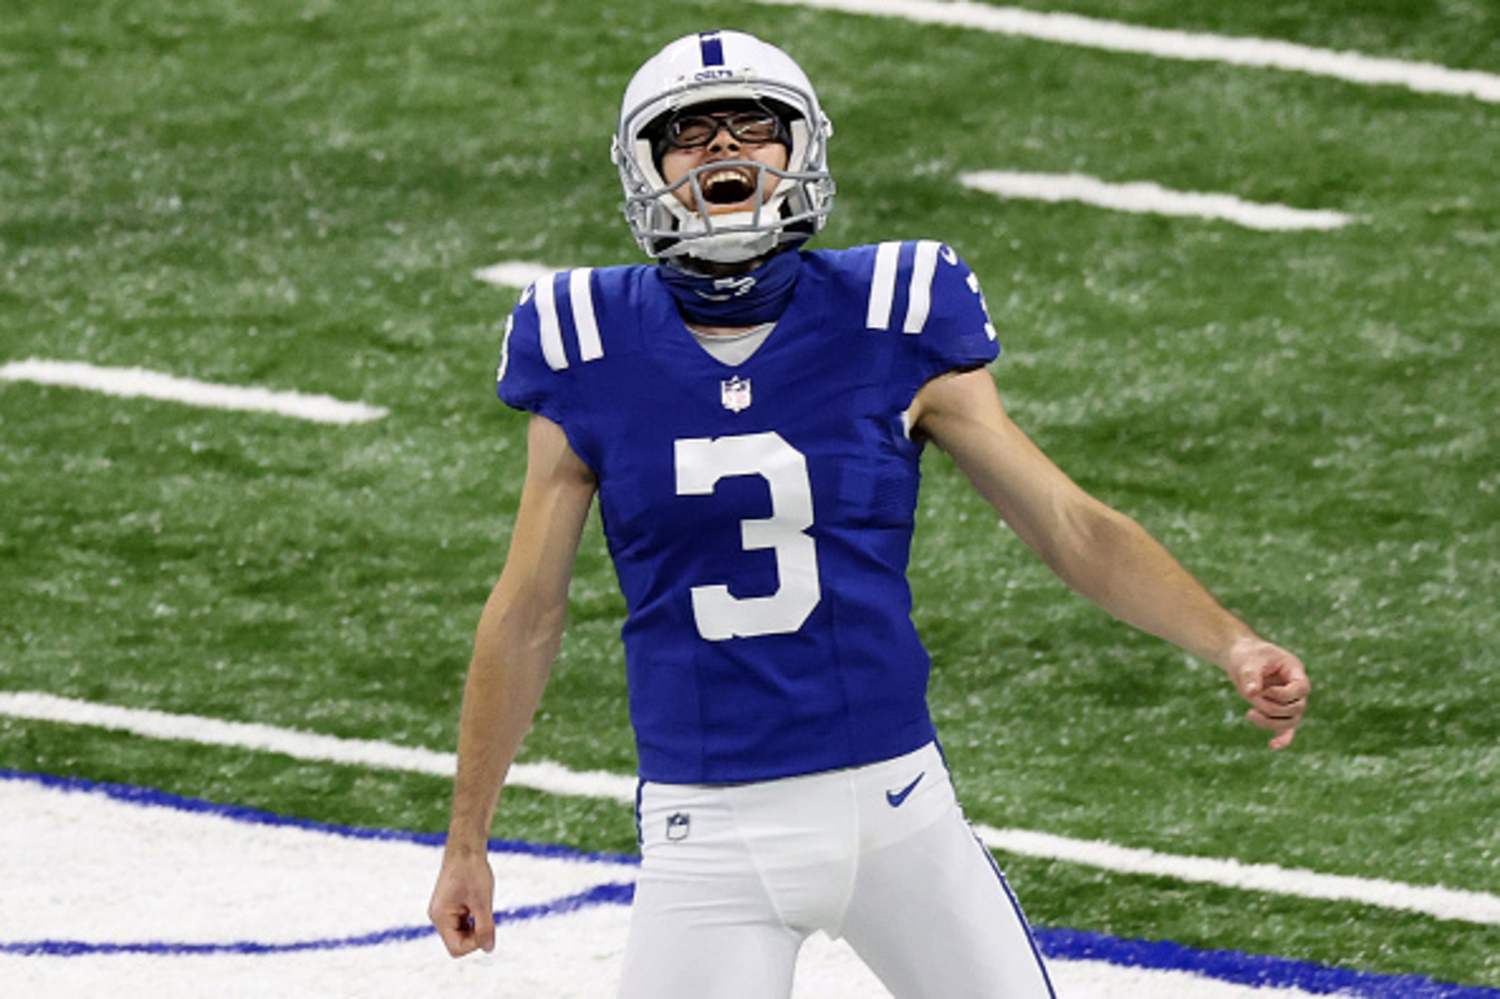 Everything You Need To Know About Colts Kicker Rodrigo Blankenship